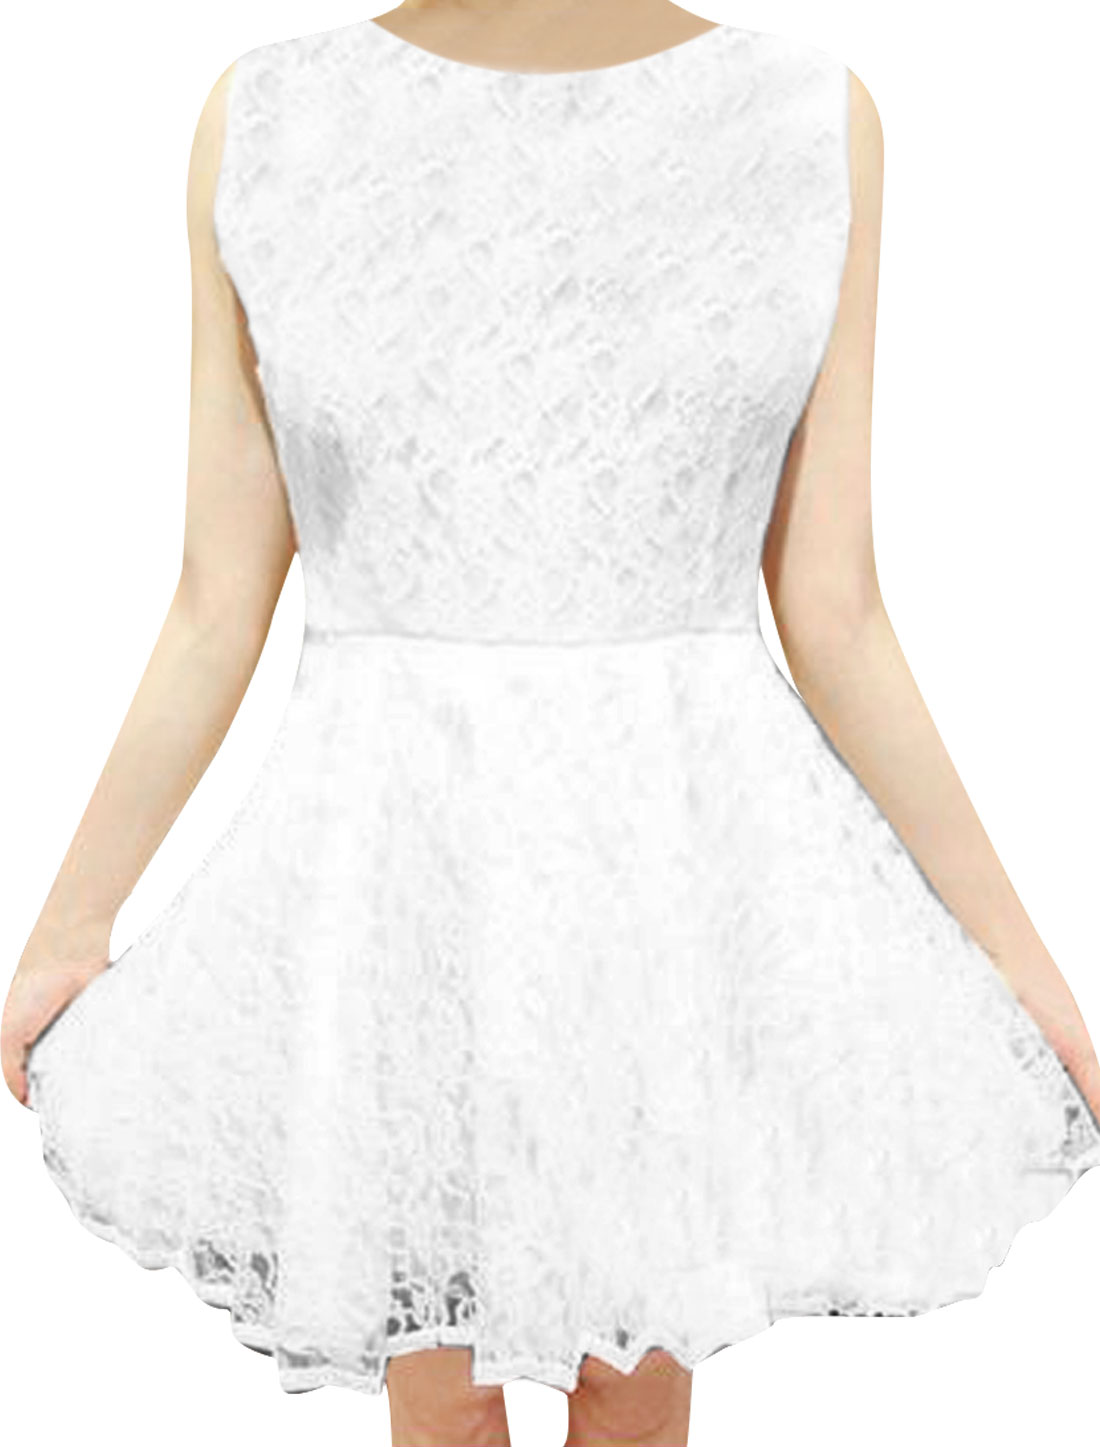 Women Sleeveless Design Solid Color Crochet Lace Pullover Dress S White